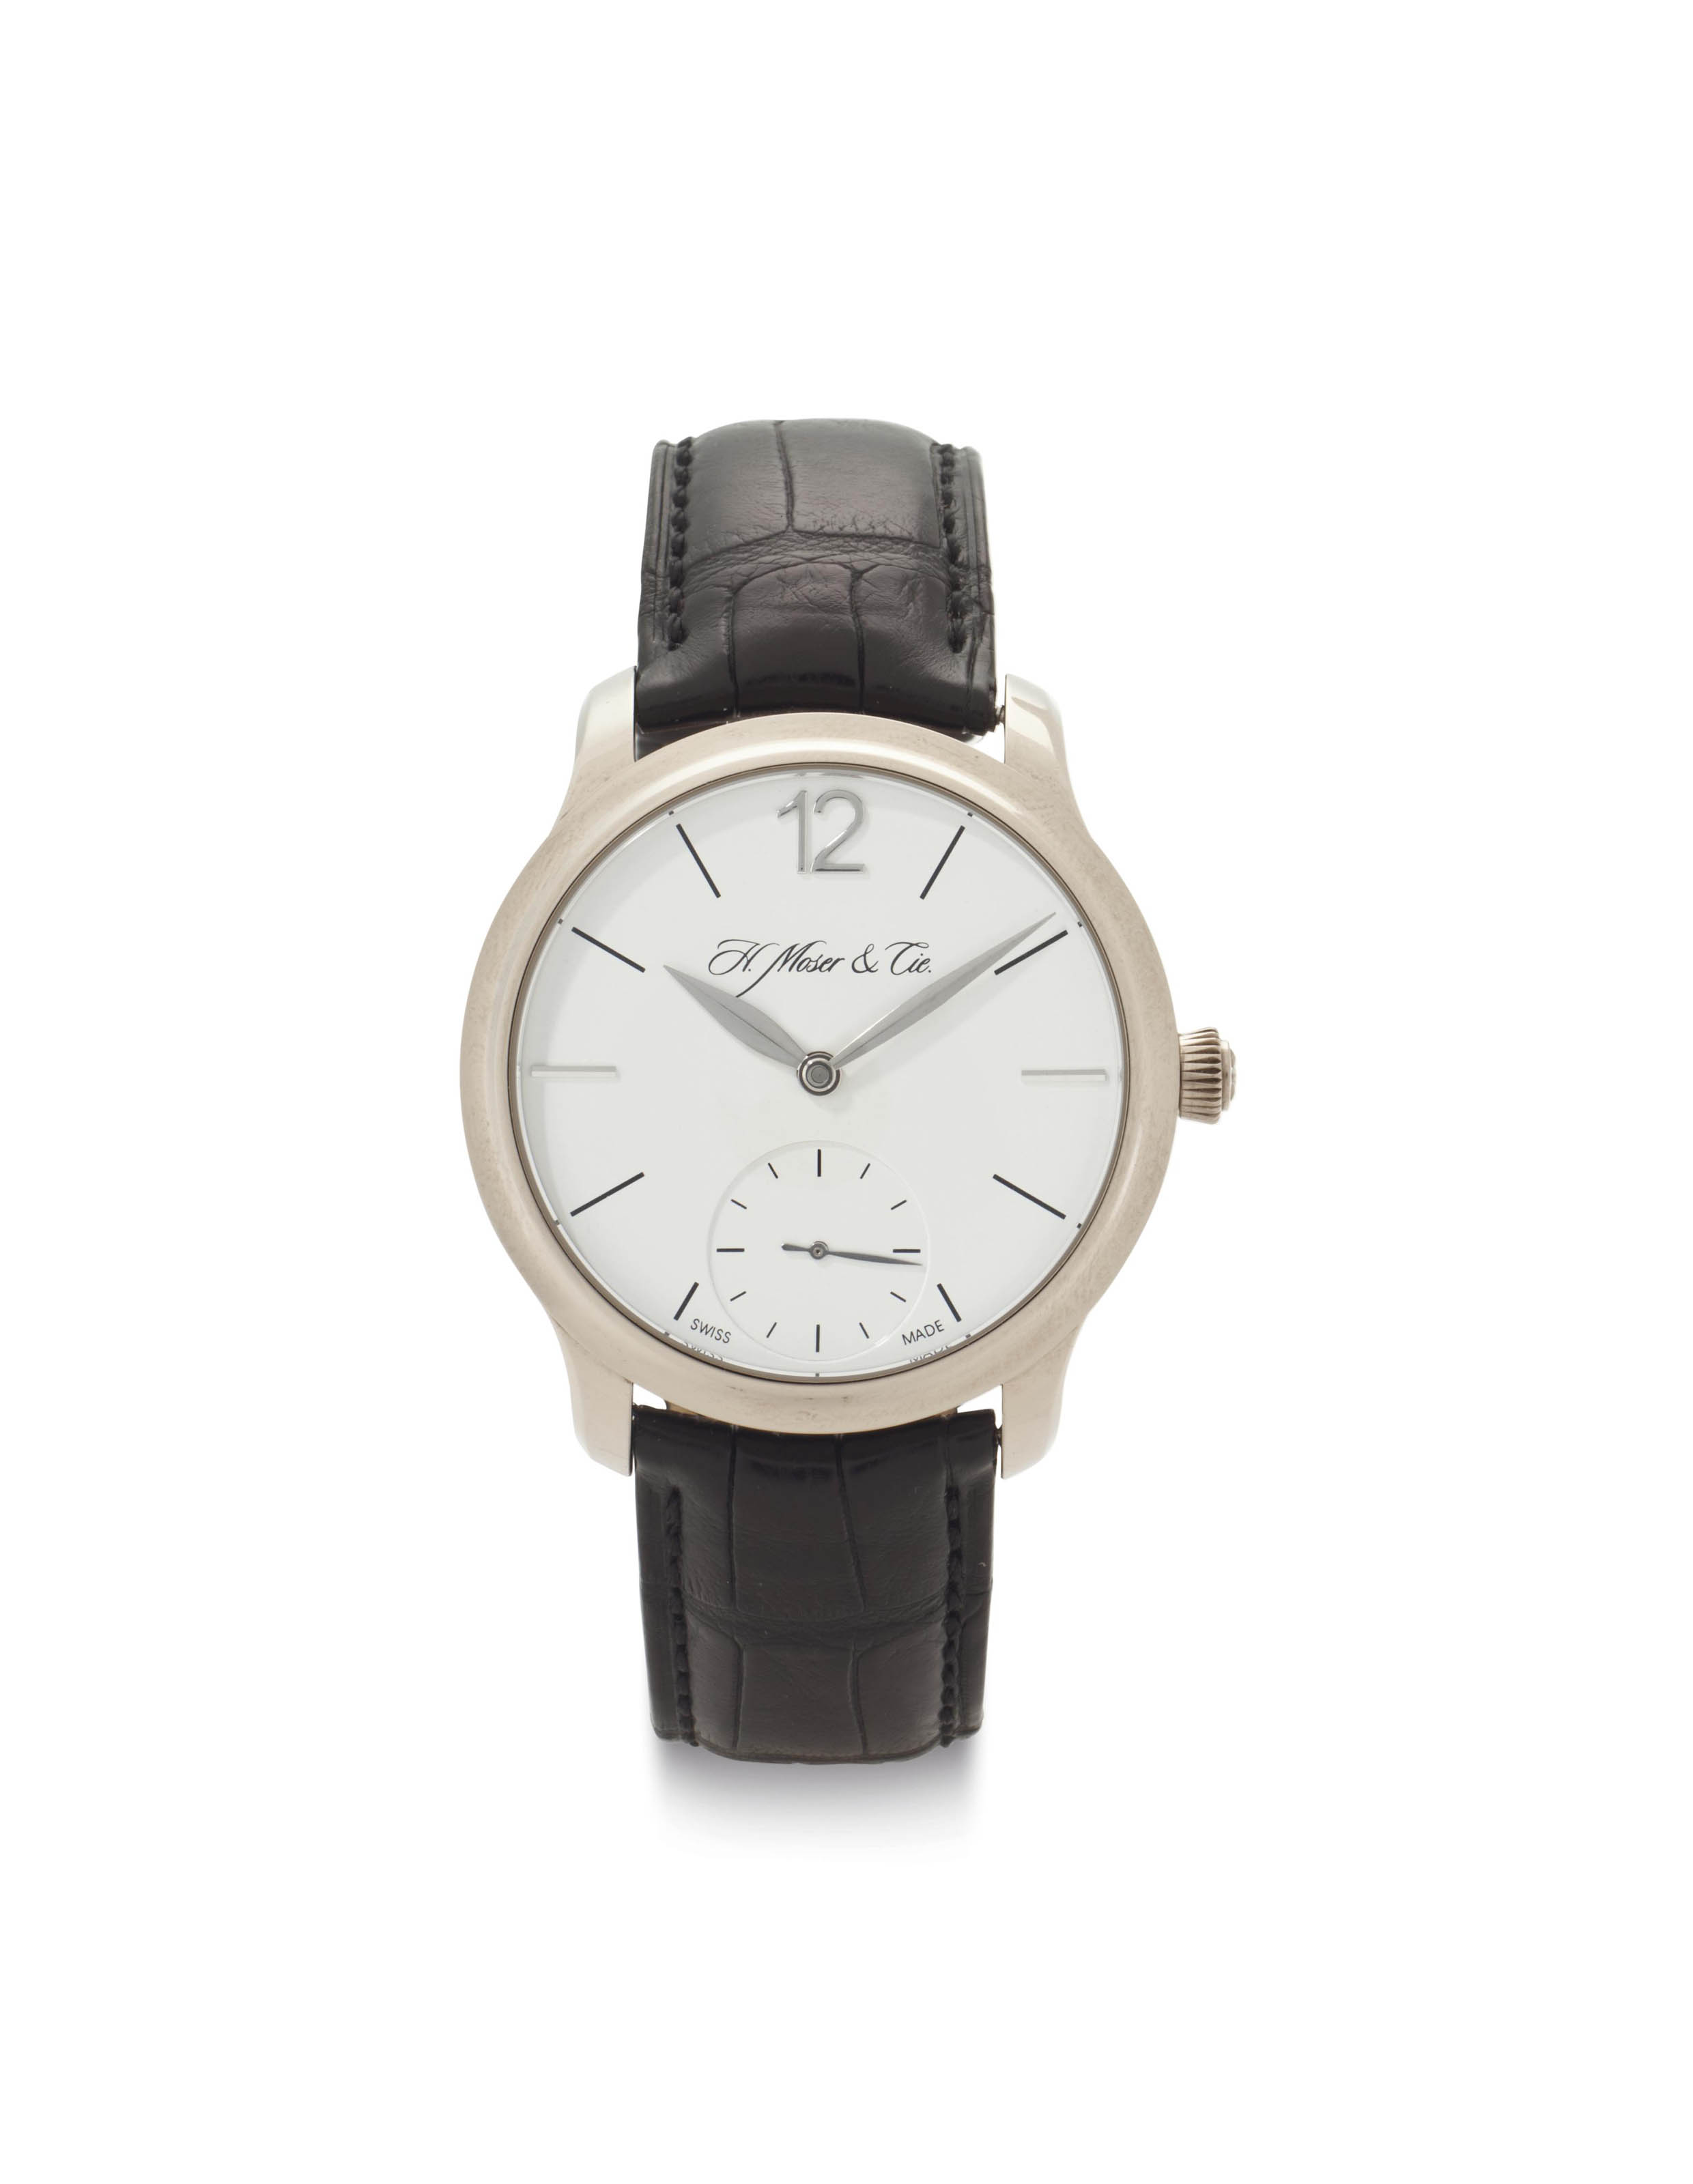 H. Moser & Cie. An 18k White Gold Limited Edition Wristwatch with Power Reserve